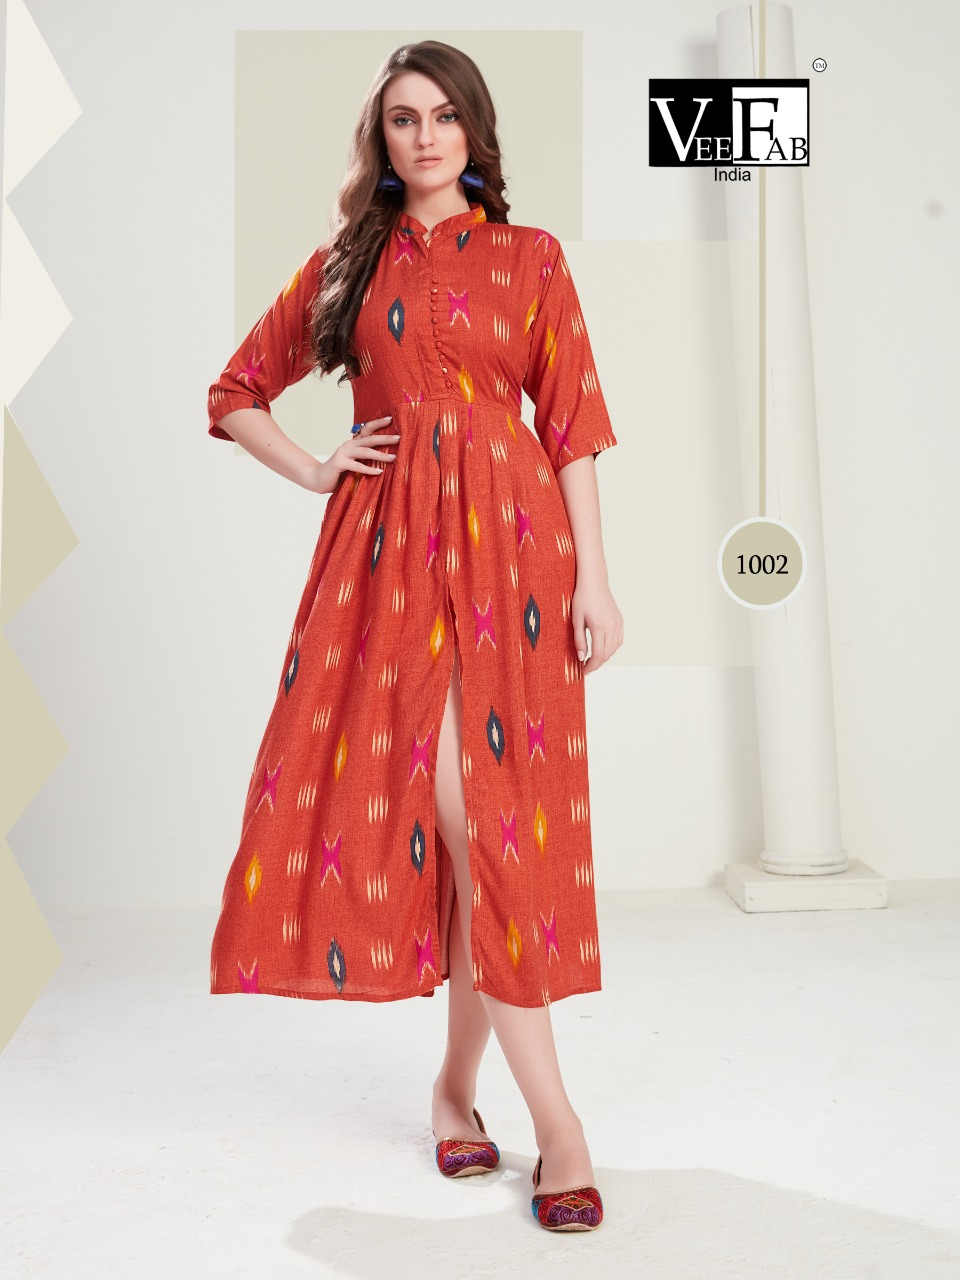 Vee Fab India Daisy Vol 2 collection 5